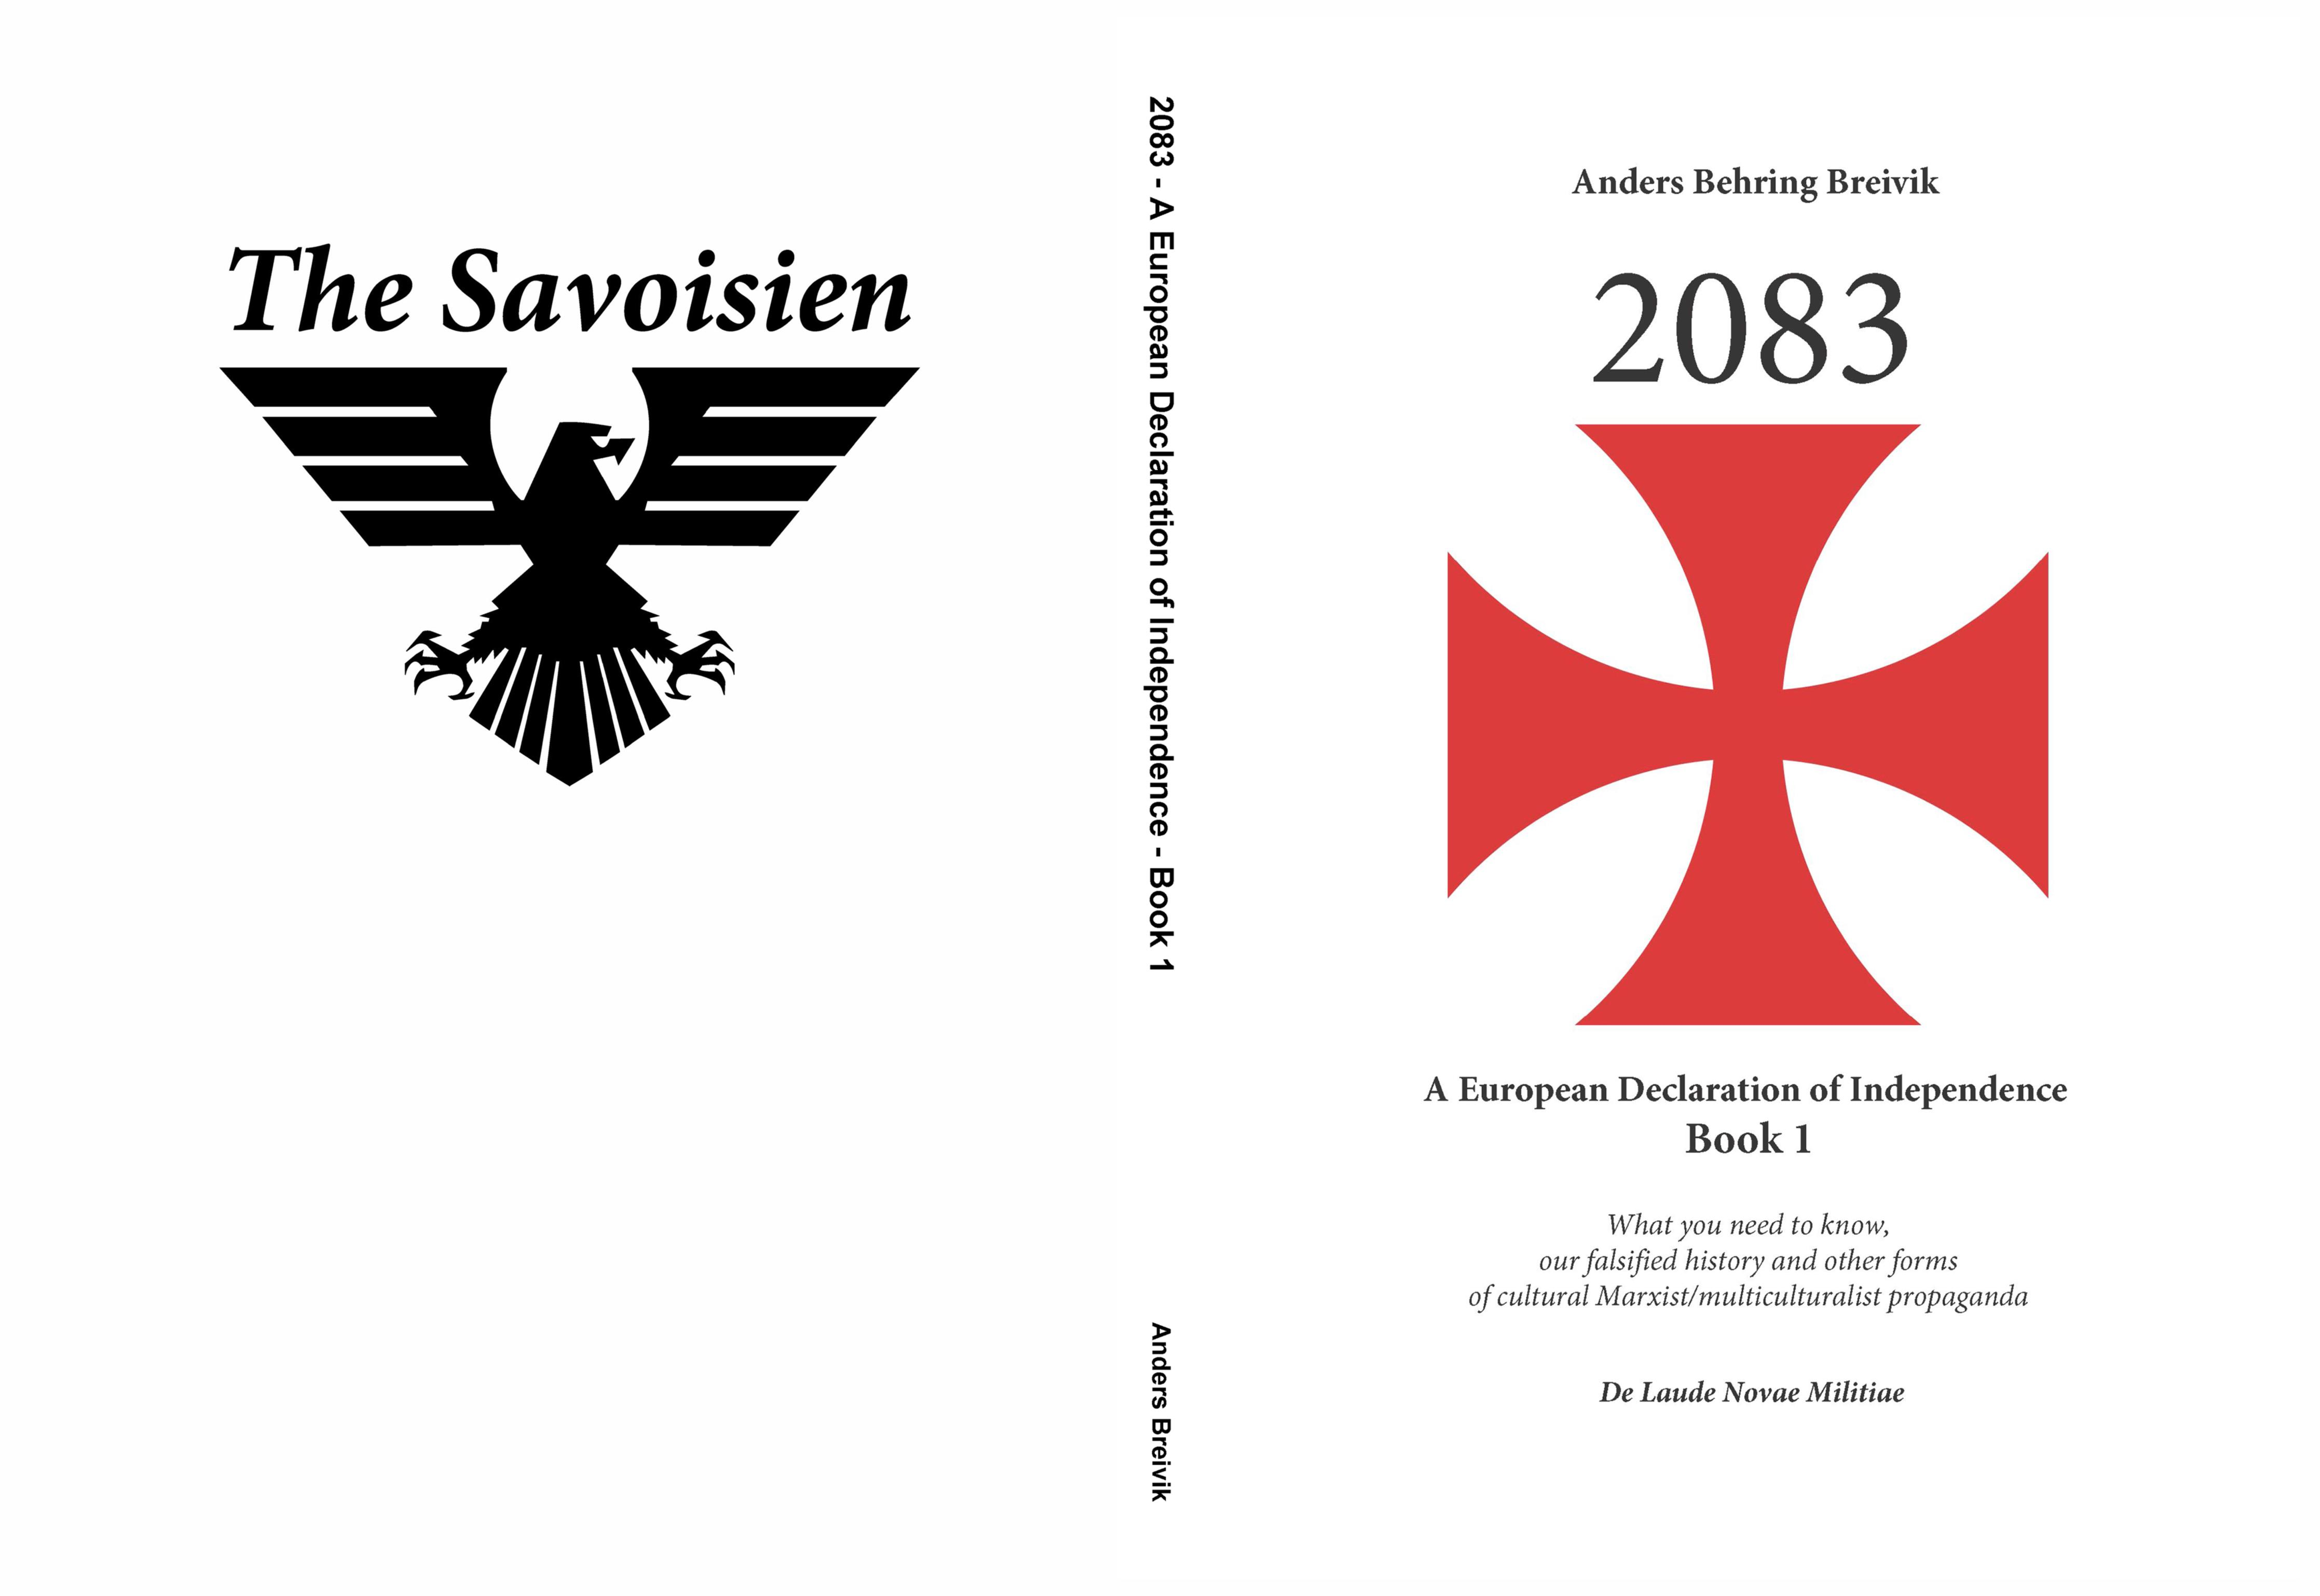 2083 Book 1 cover image